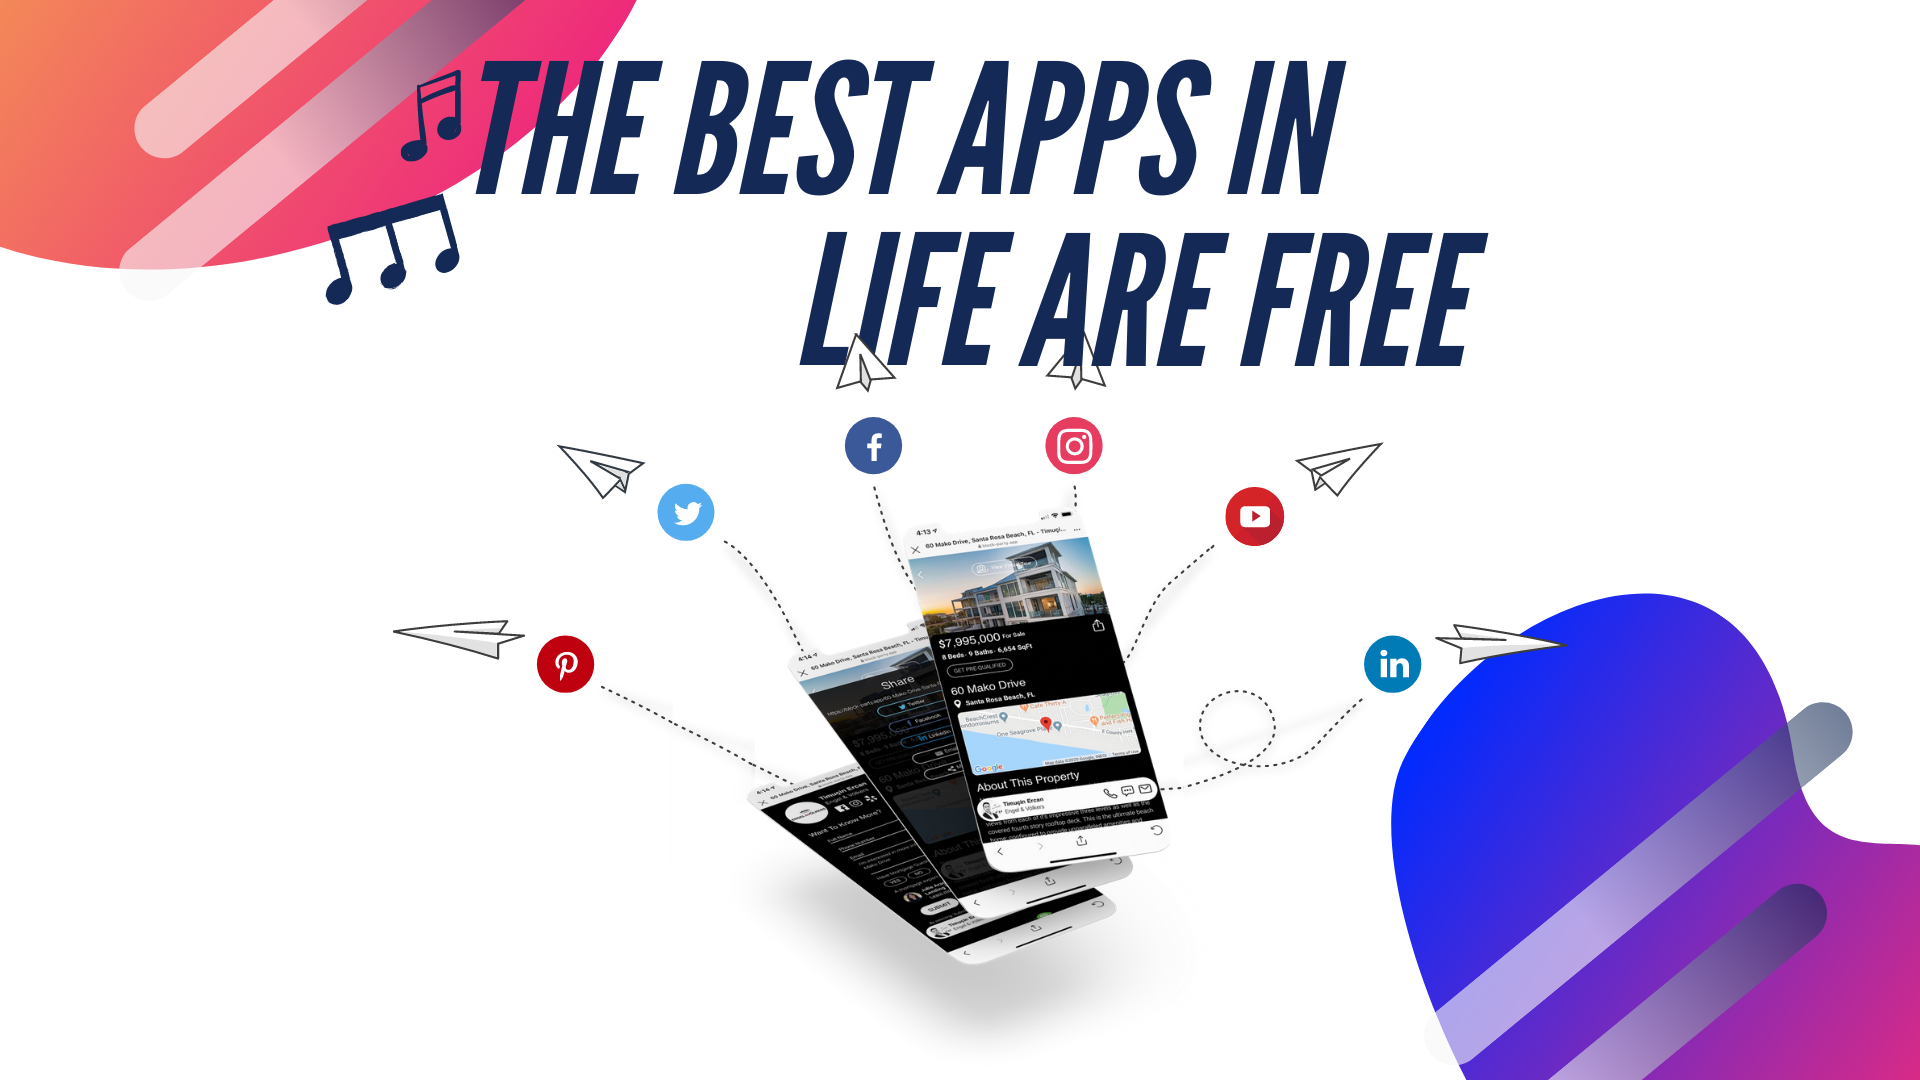 the best apps are free